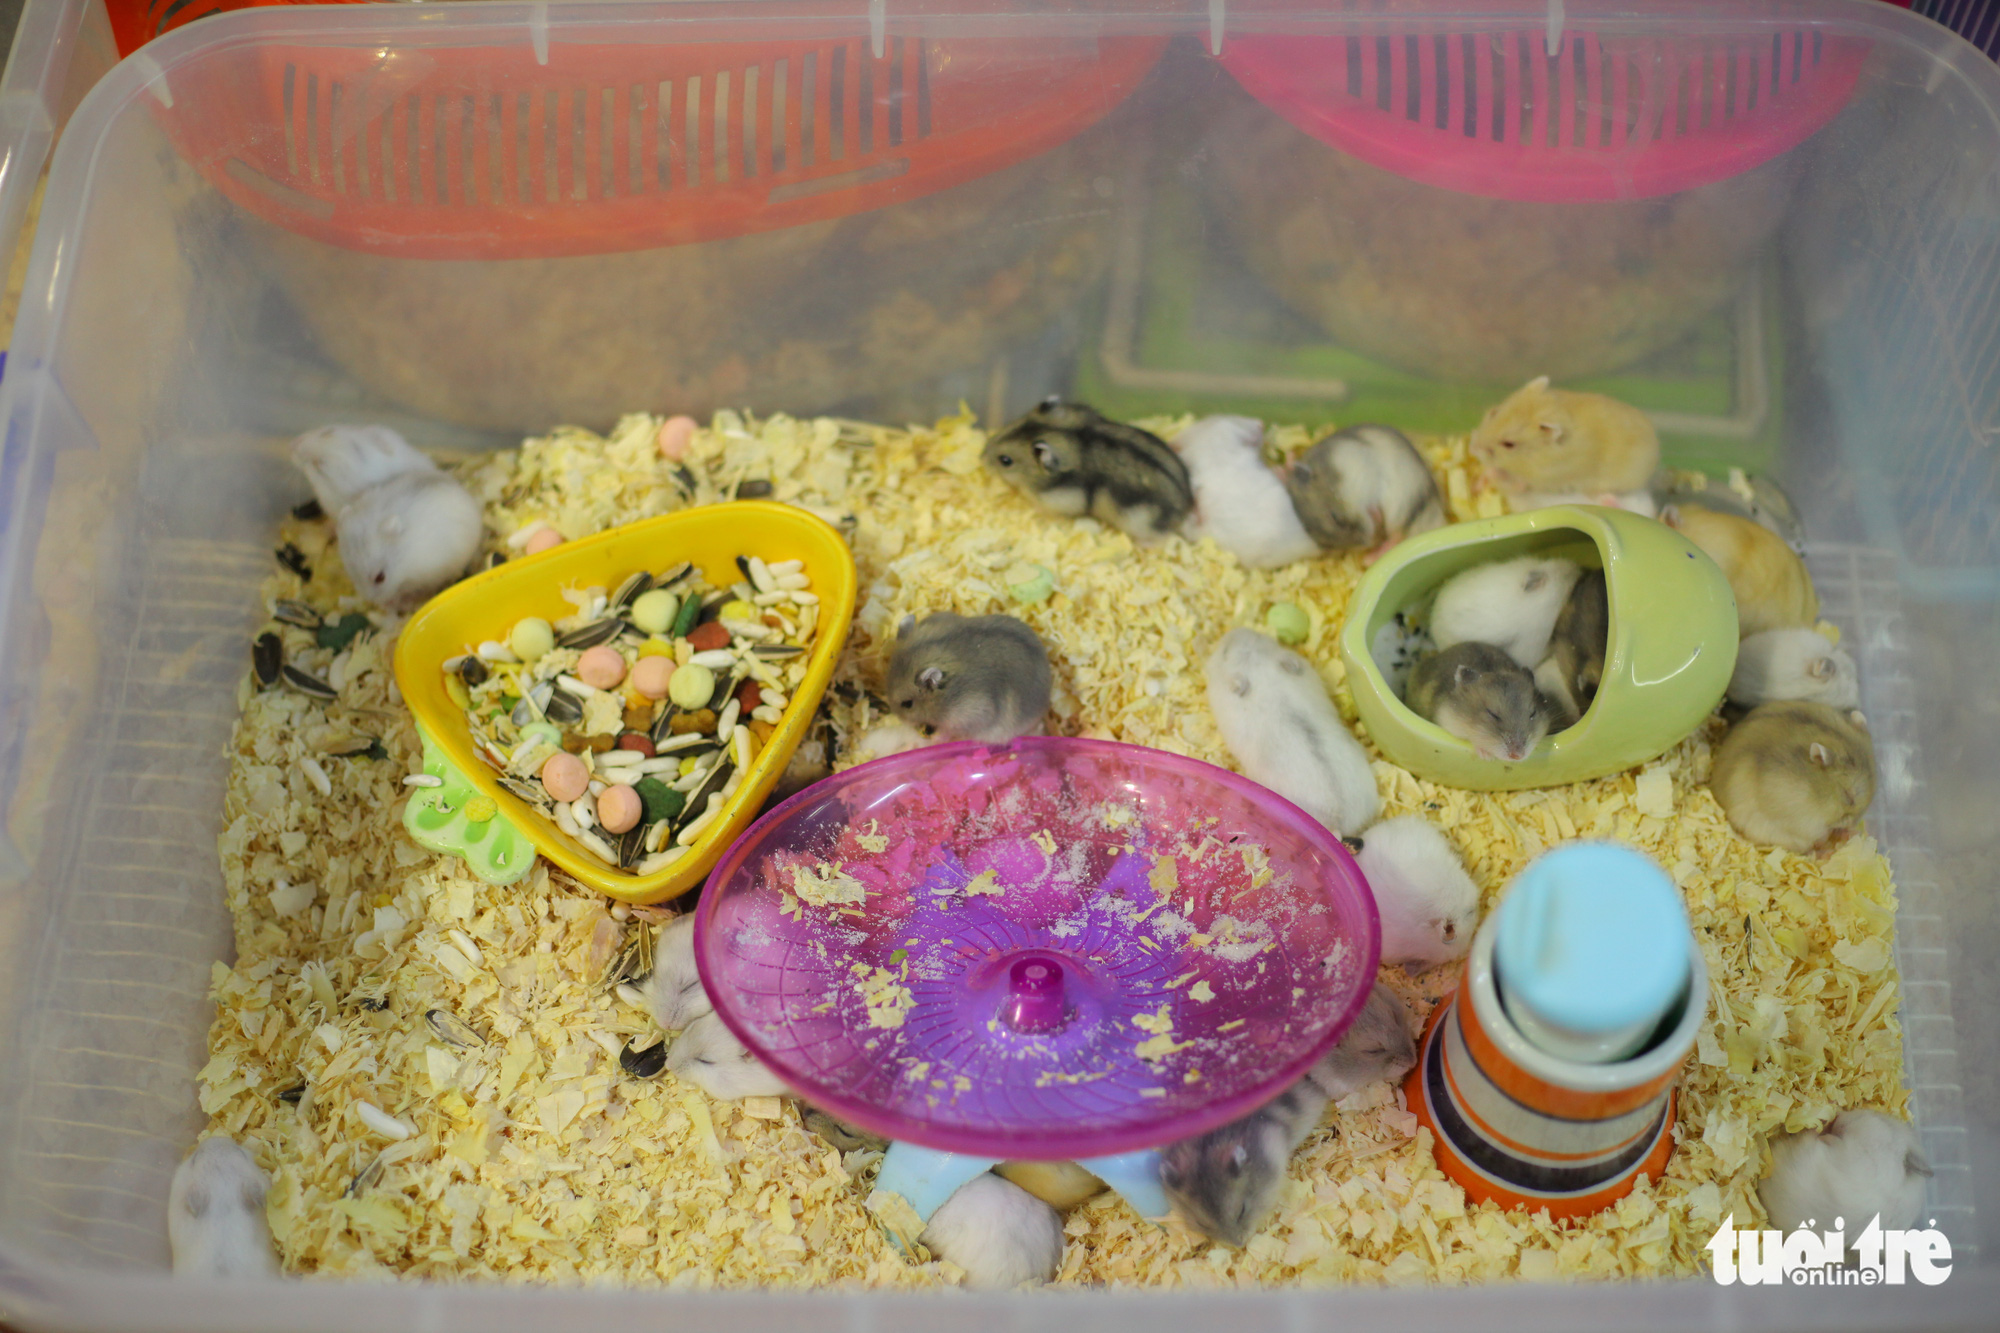 A container full of hamsters for sale are seen at a pet shop in Hanoi. Photo: Mai Thuong / Tuoi Tre